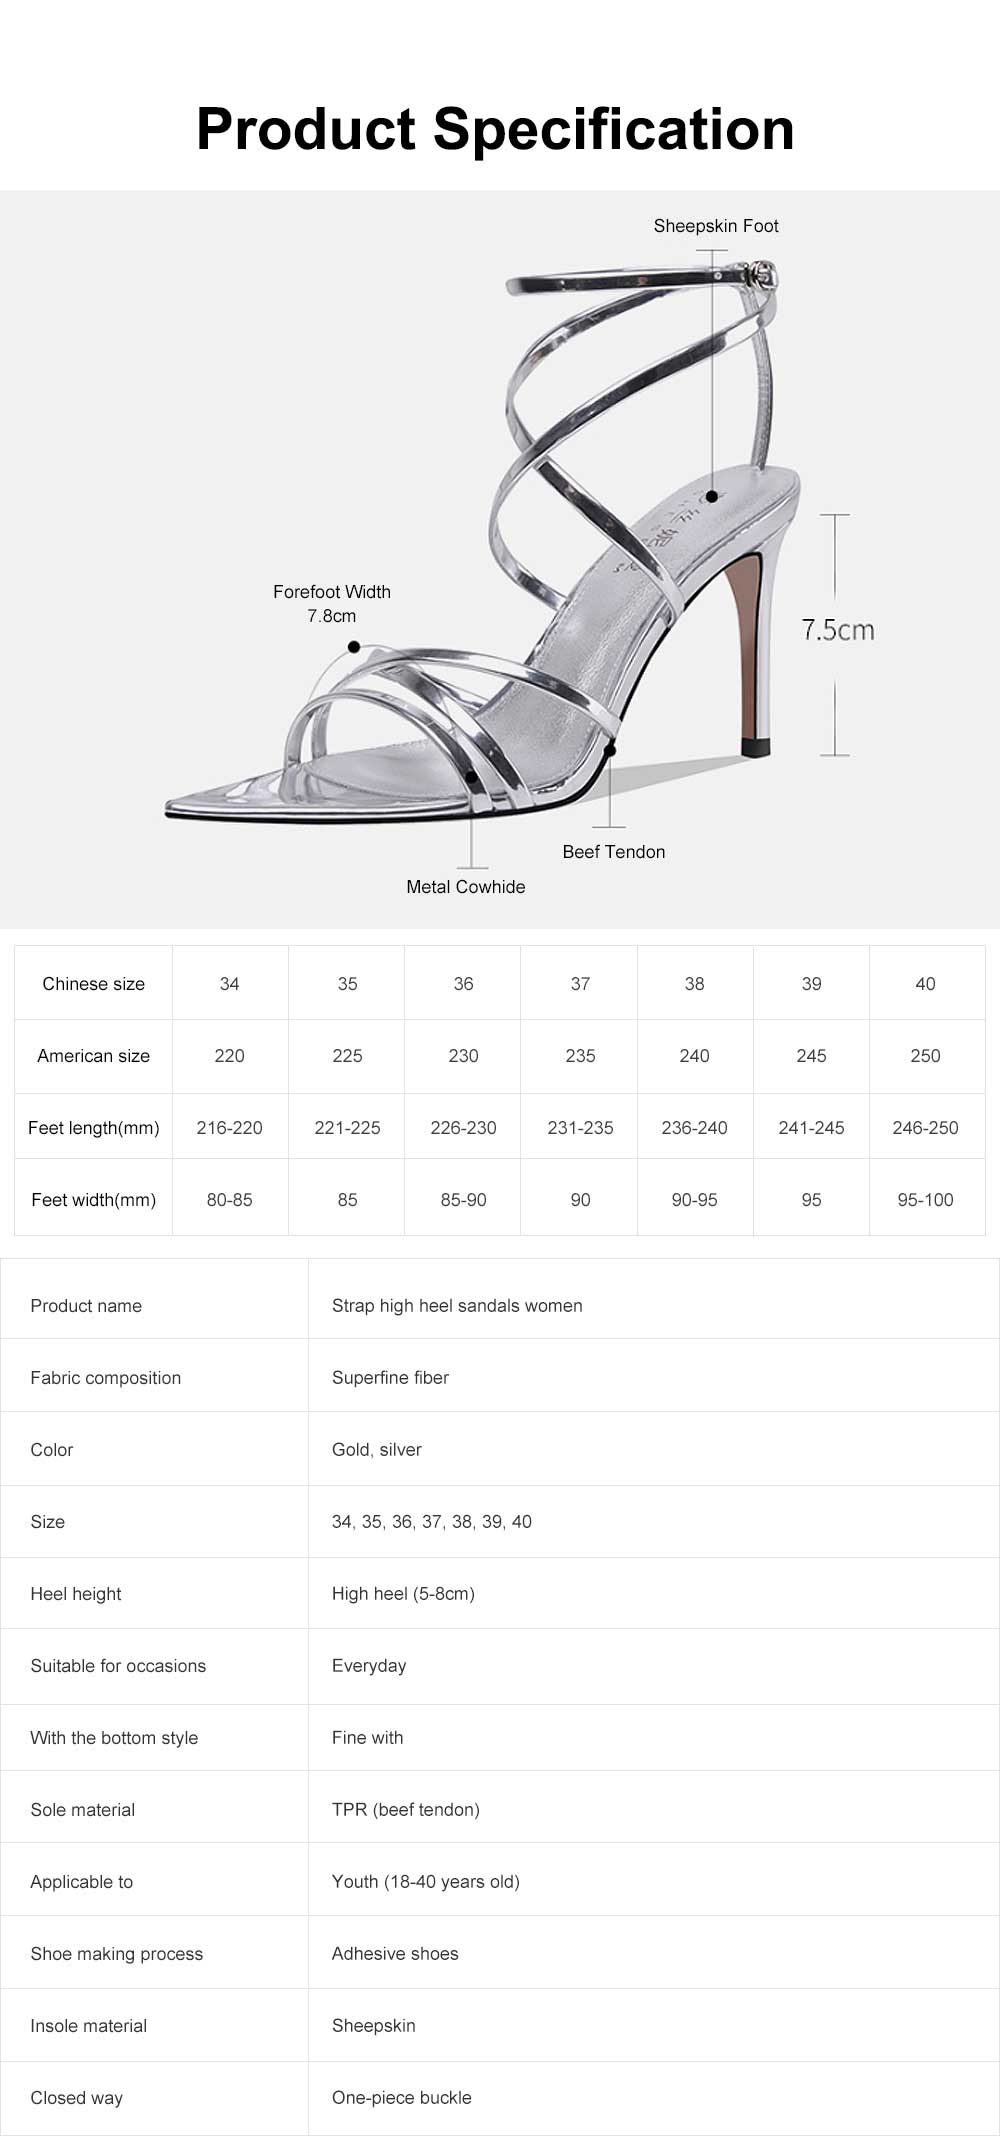 Open Toes High Heel Sandals with Ankle Strap, Front Cross Strap Footwear Thin Heel Dress Shoes for Fashion Ladies Summer 6